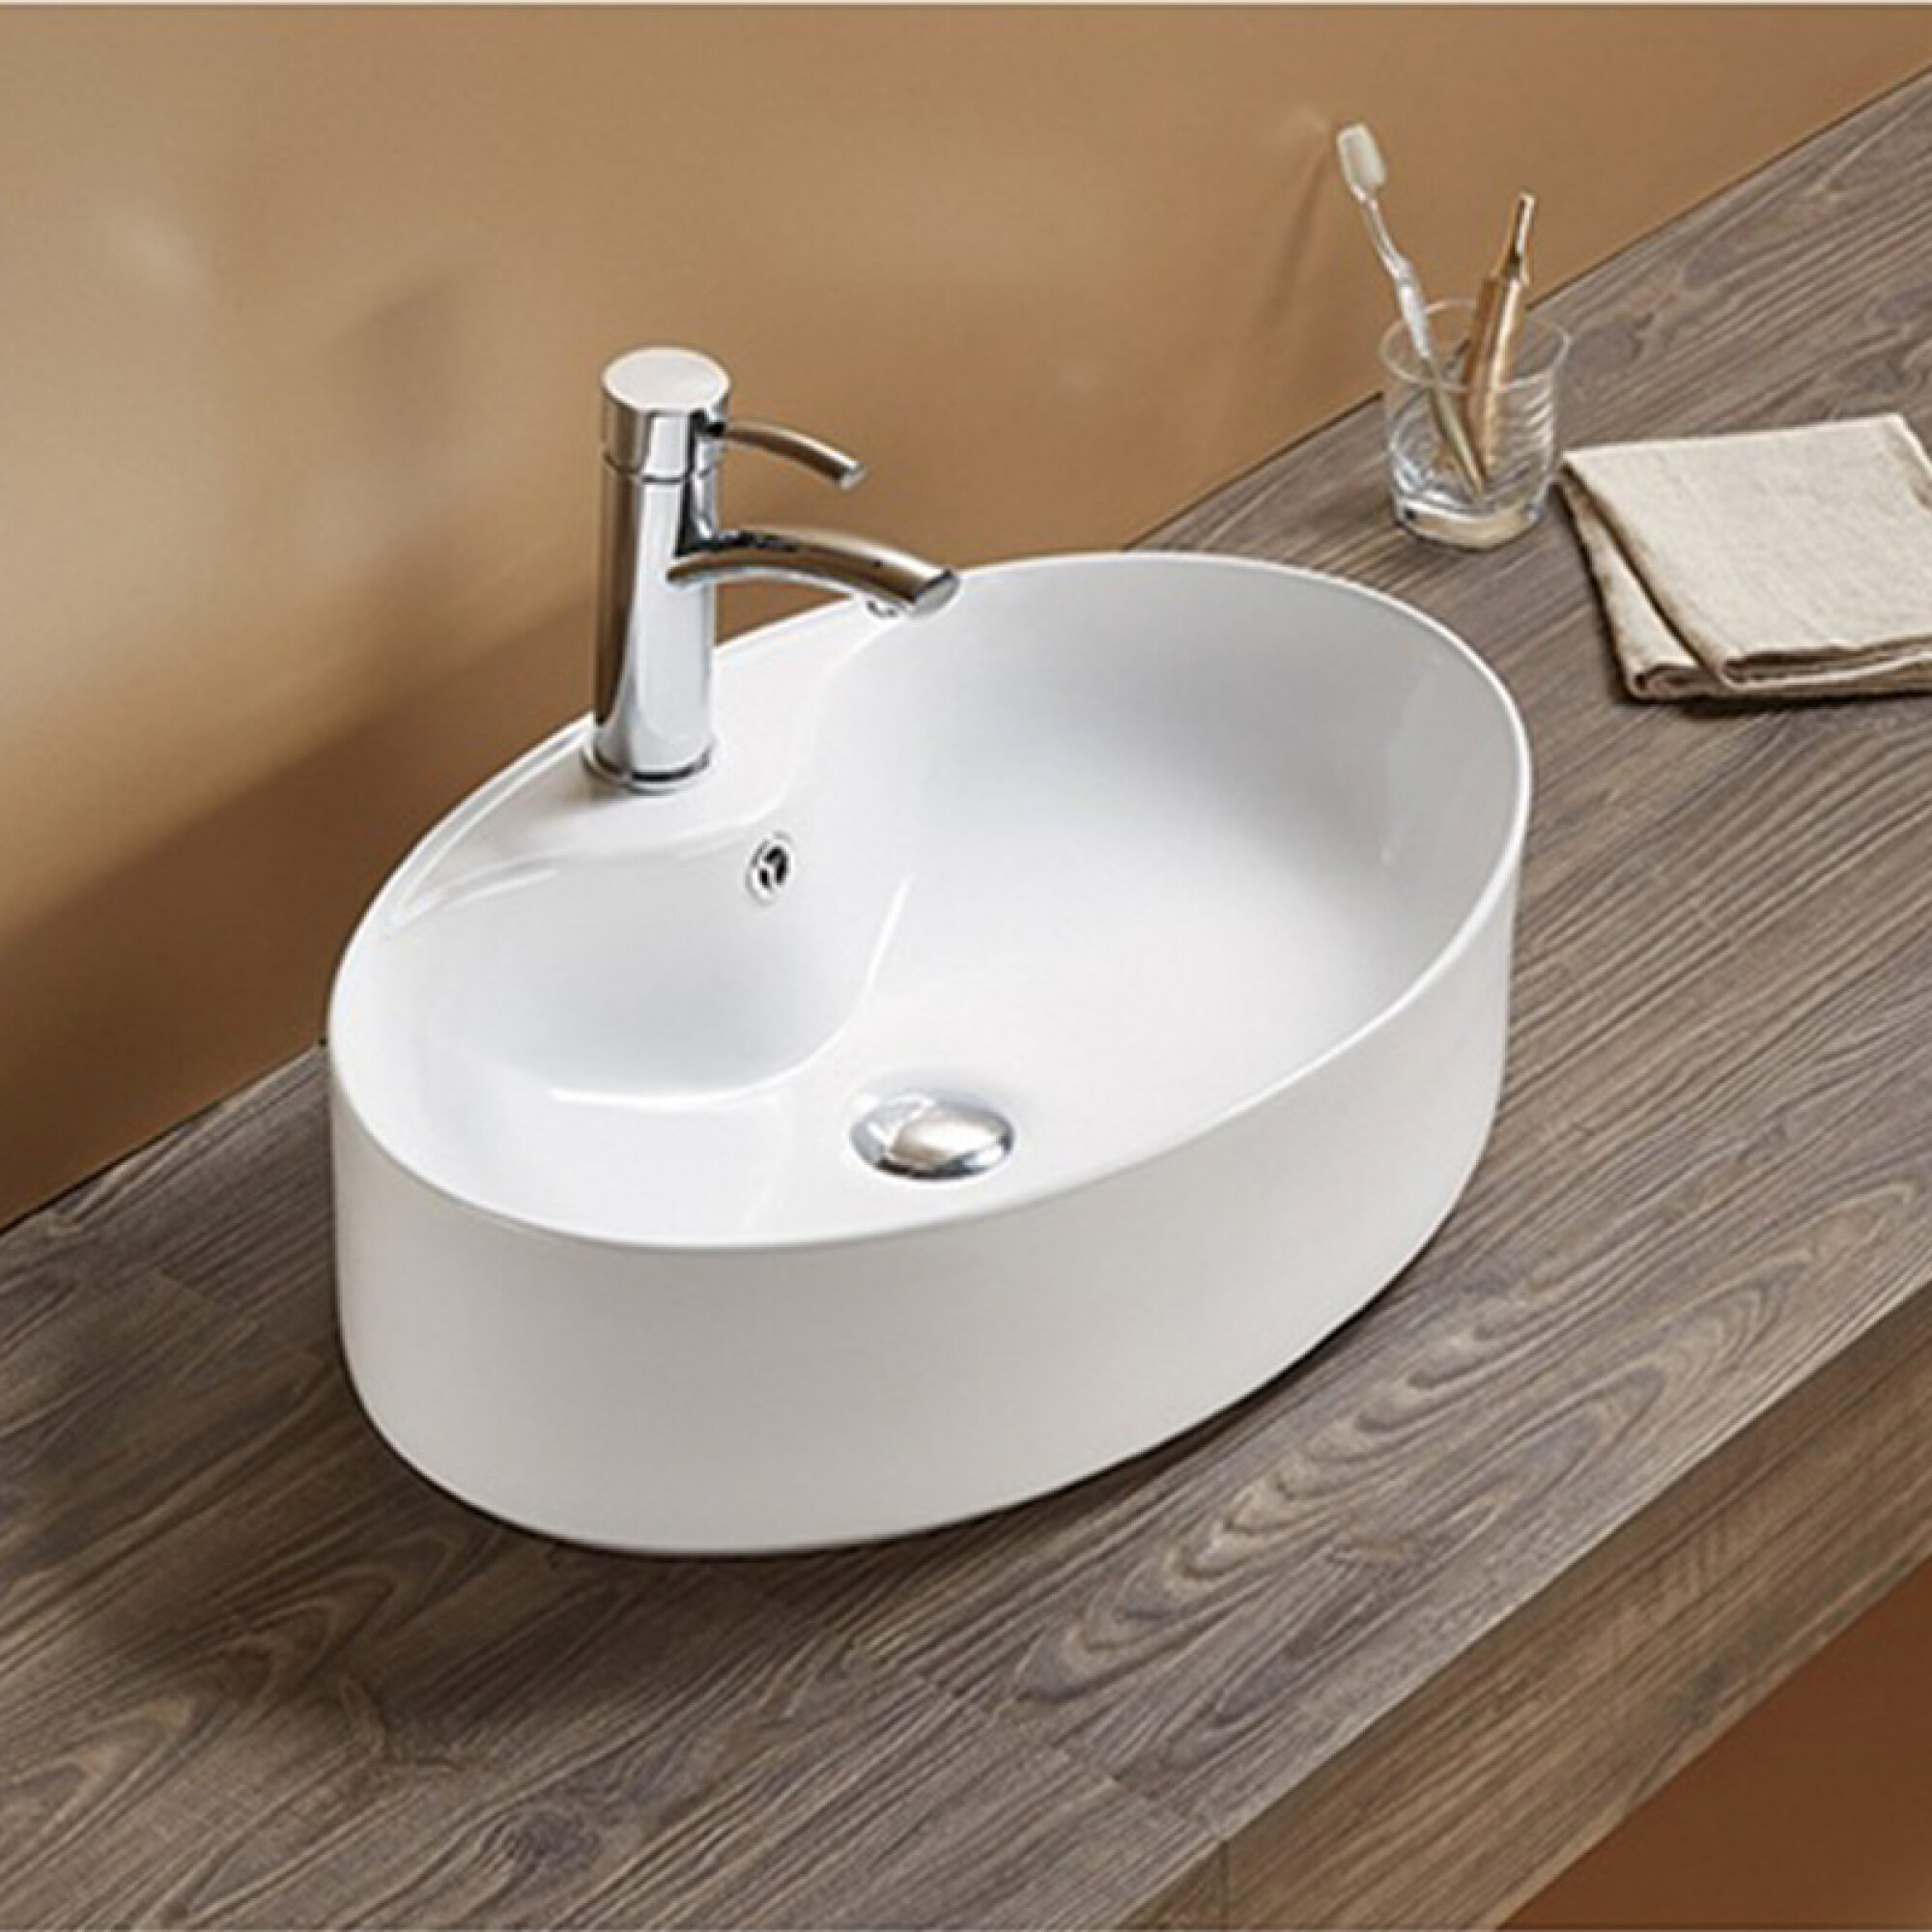 Avanities Ceramic Oval Vessel Bathroom Sink Wayfair